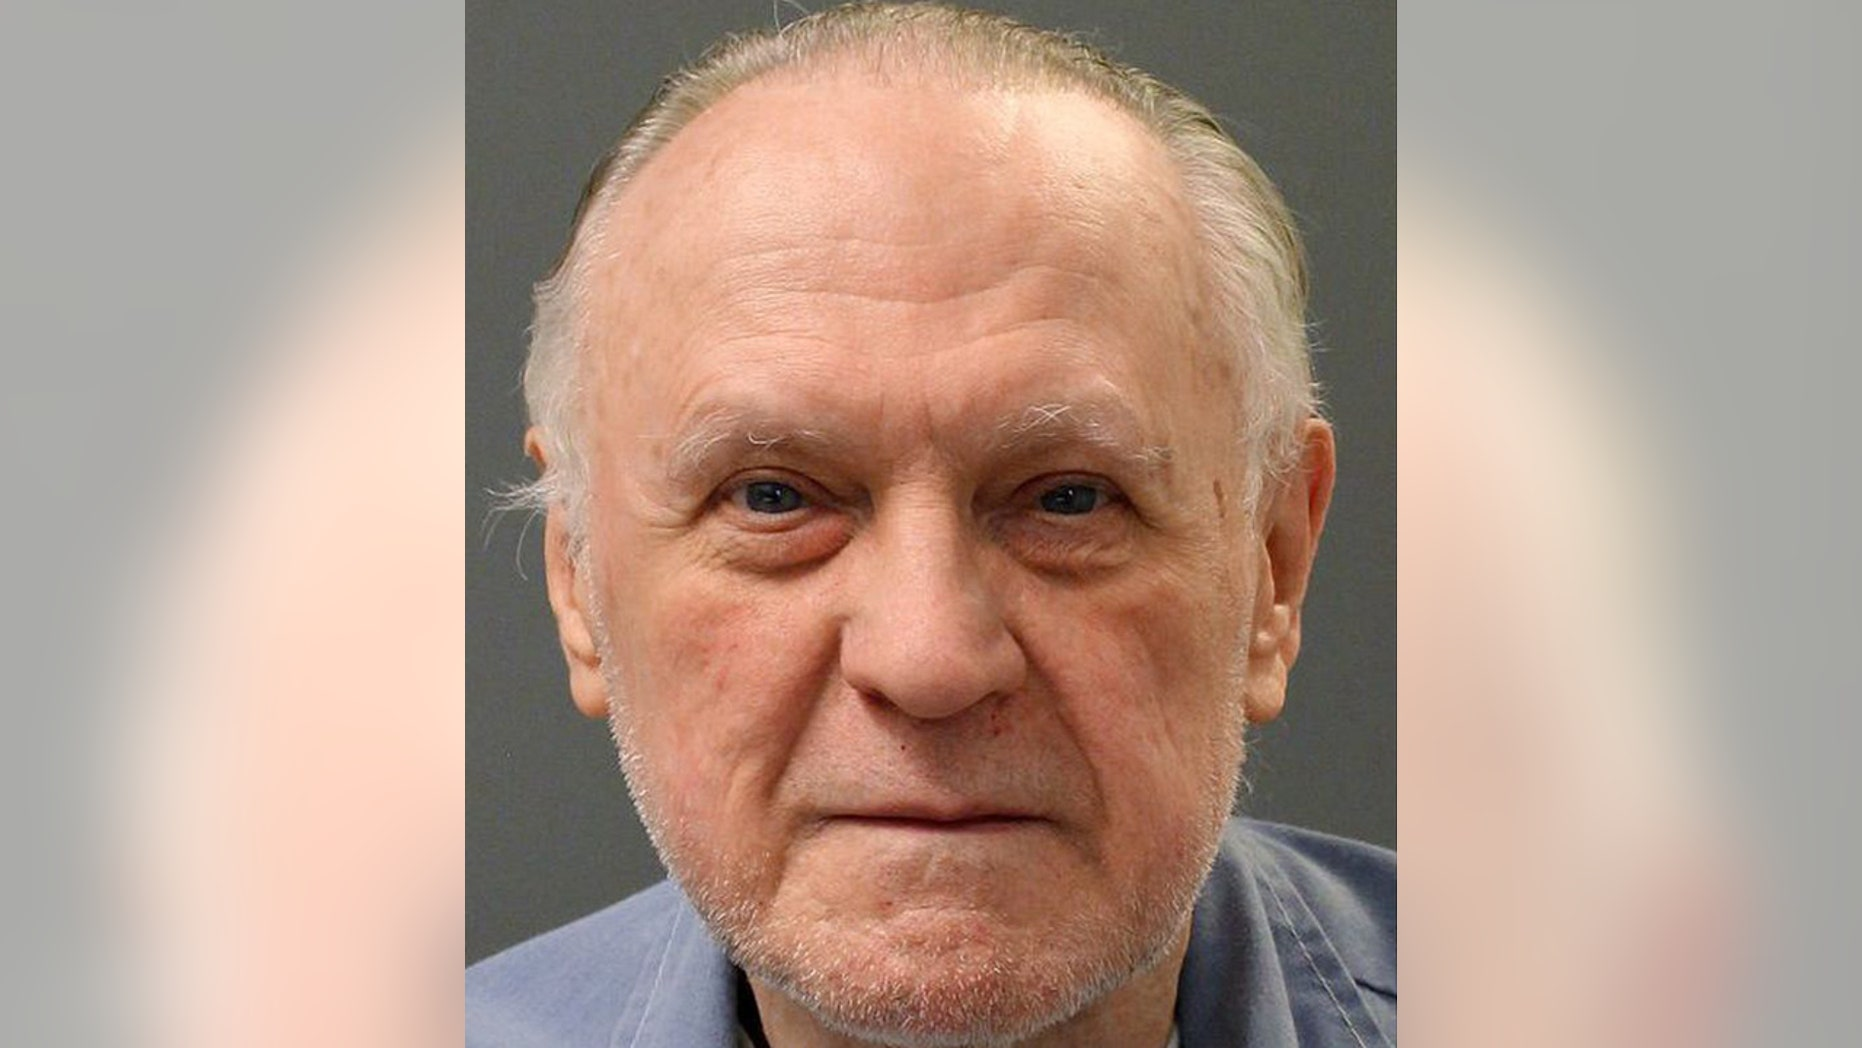 Leonard Joseph Richards, 72, is serving a life sentence at Minnesota Correctional Facility-Stillwater for murdering his half-sister and his lawyer.